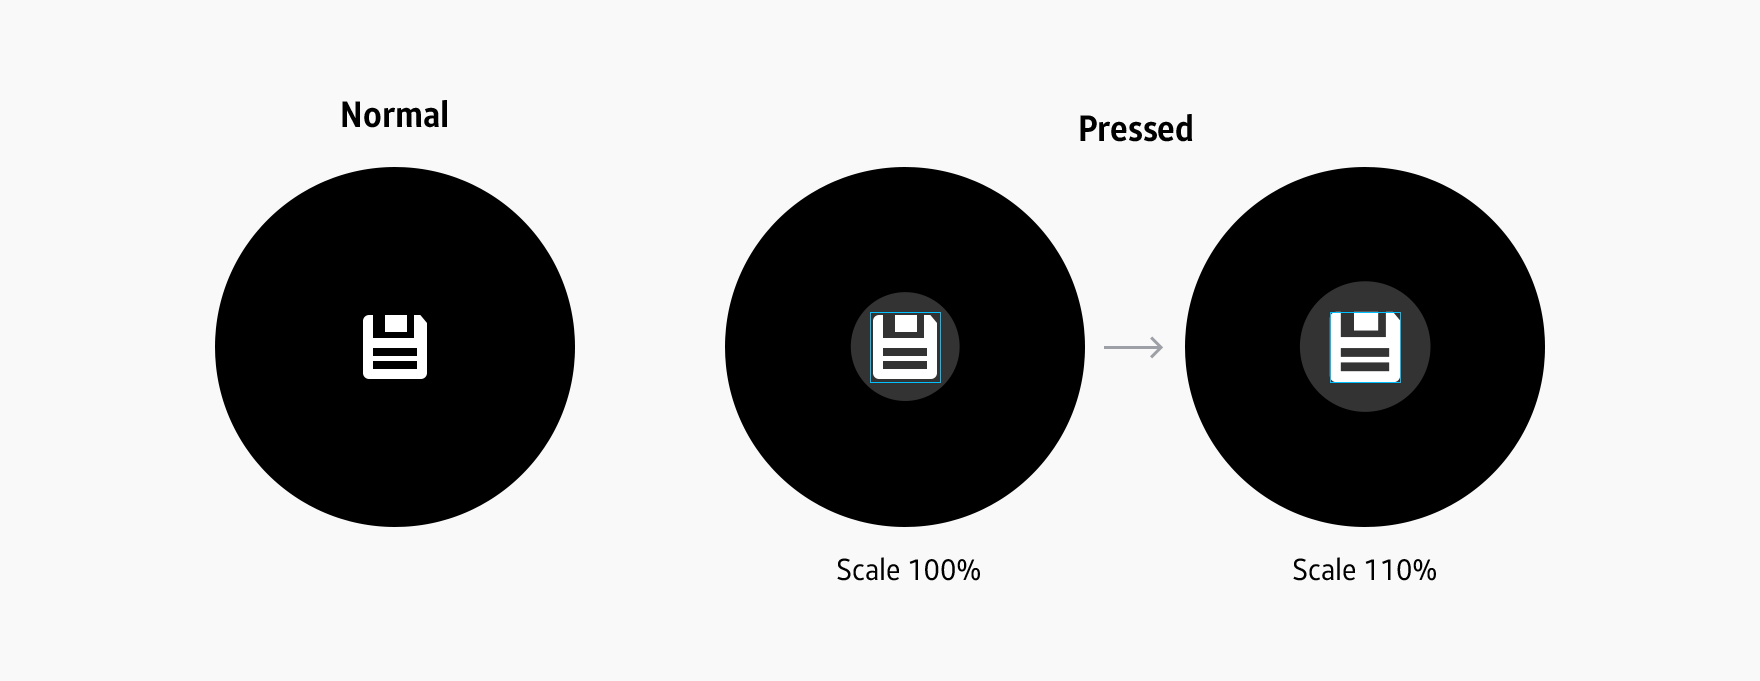 When users press a 2D icon without a container, a circle appears around the button and is scaled up to 110% of its original size